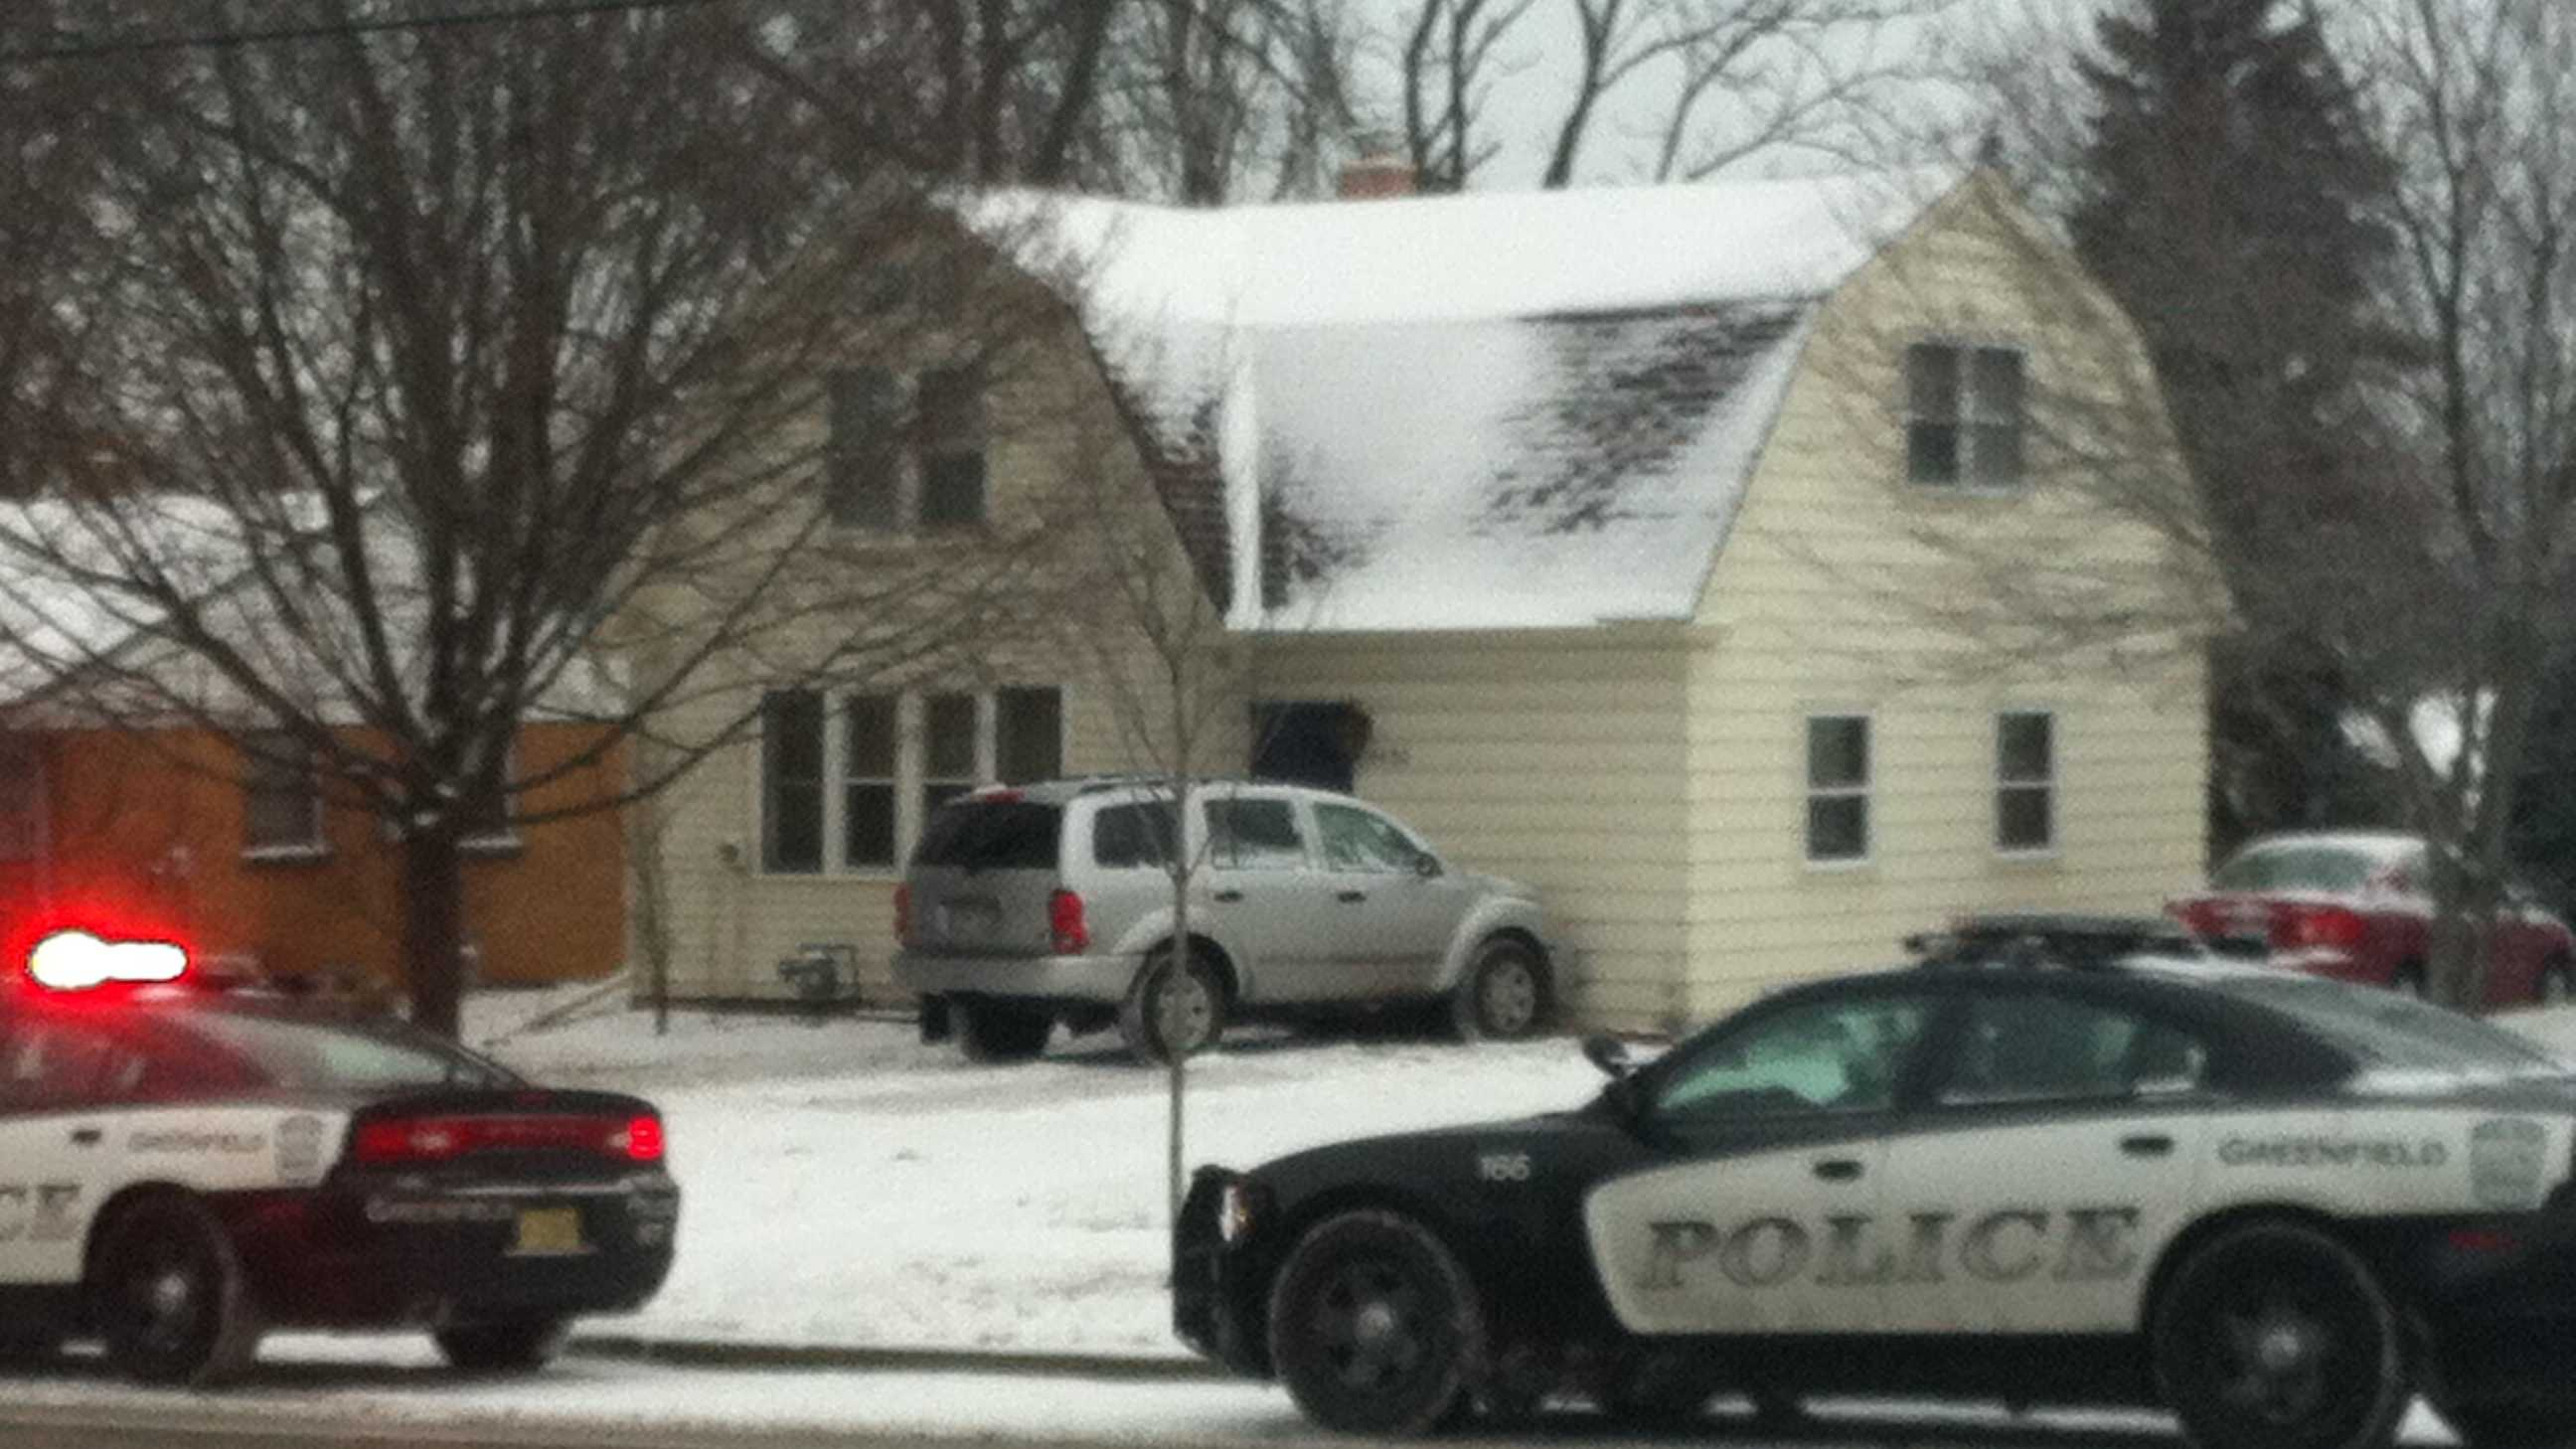 SUV into house